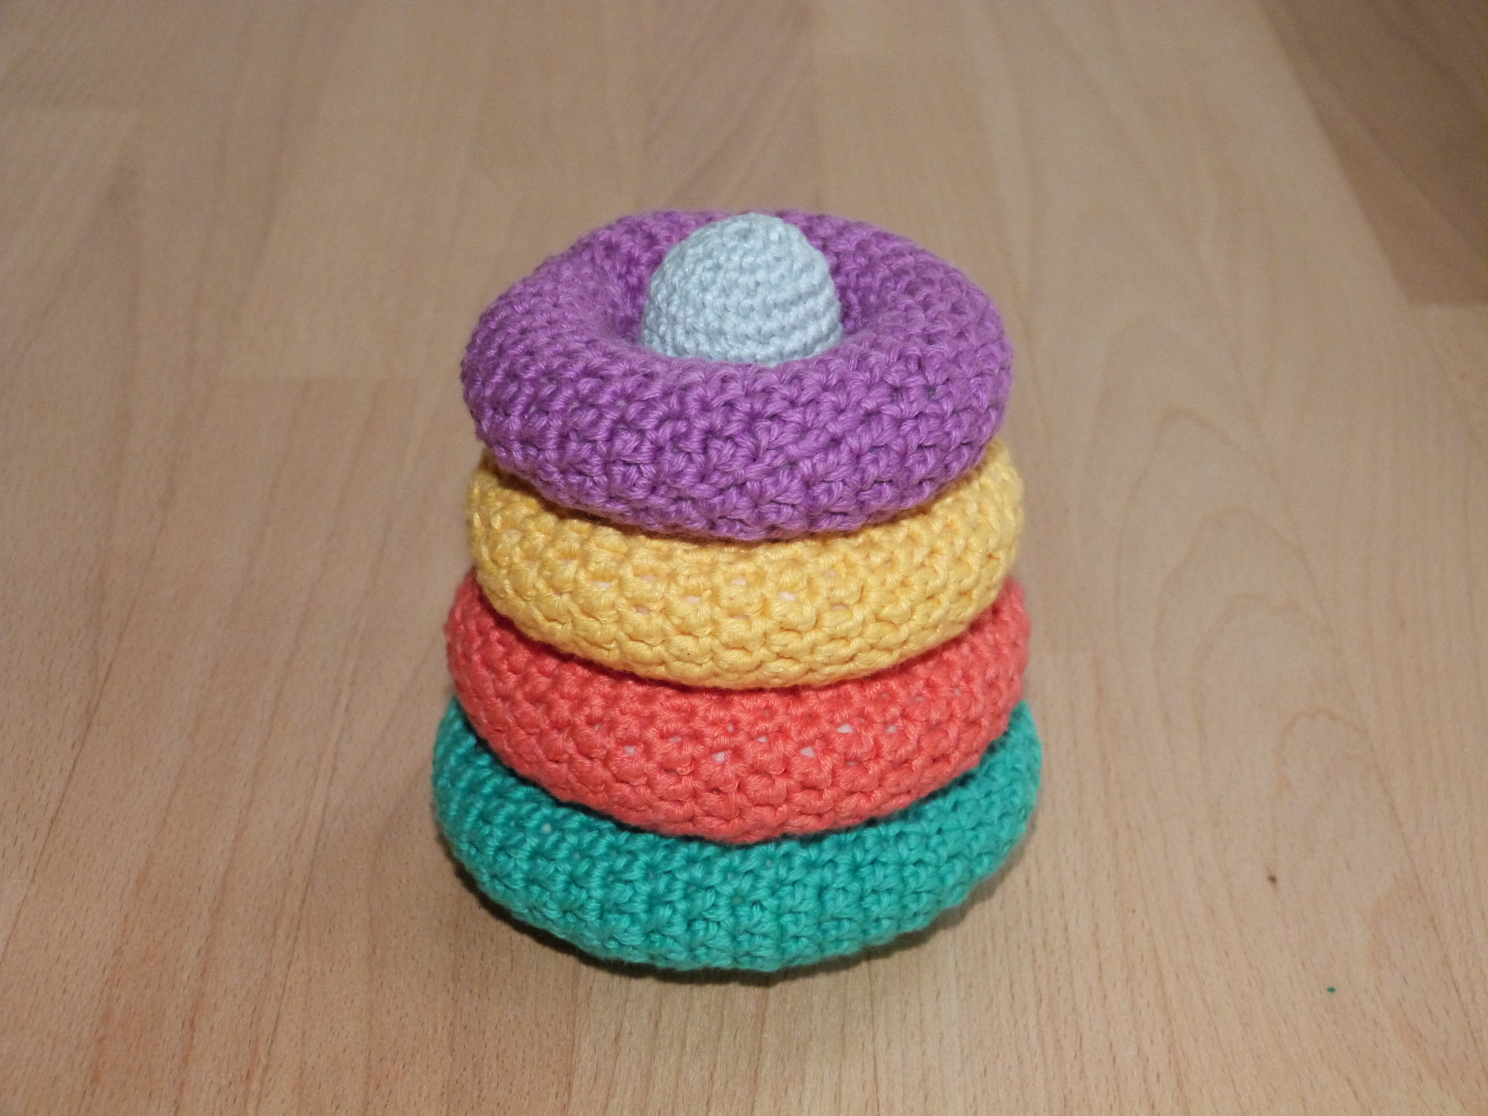 Crochet pattern for a toddler's toy